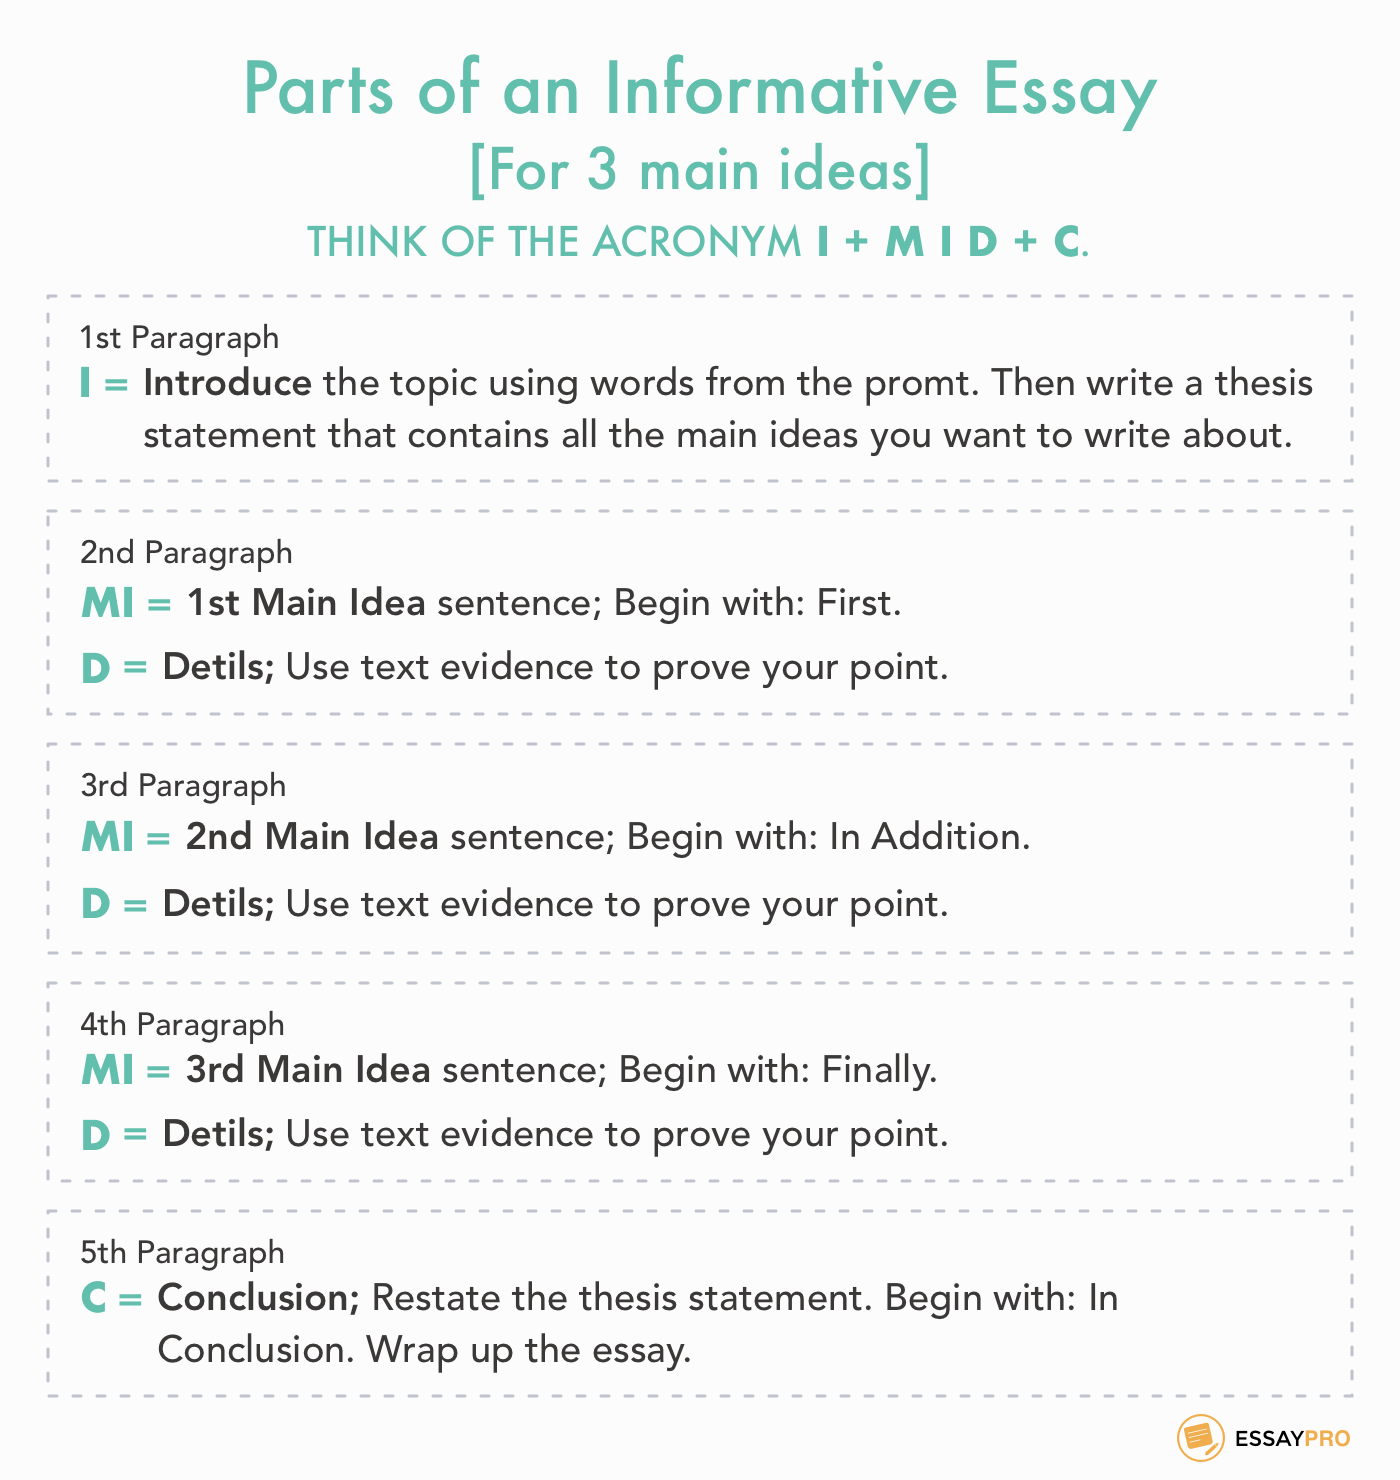 parts of an informative essay